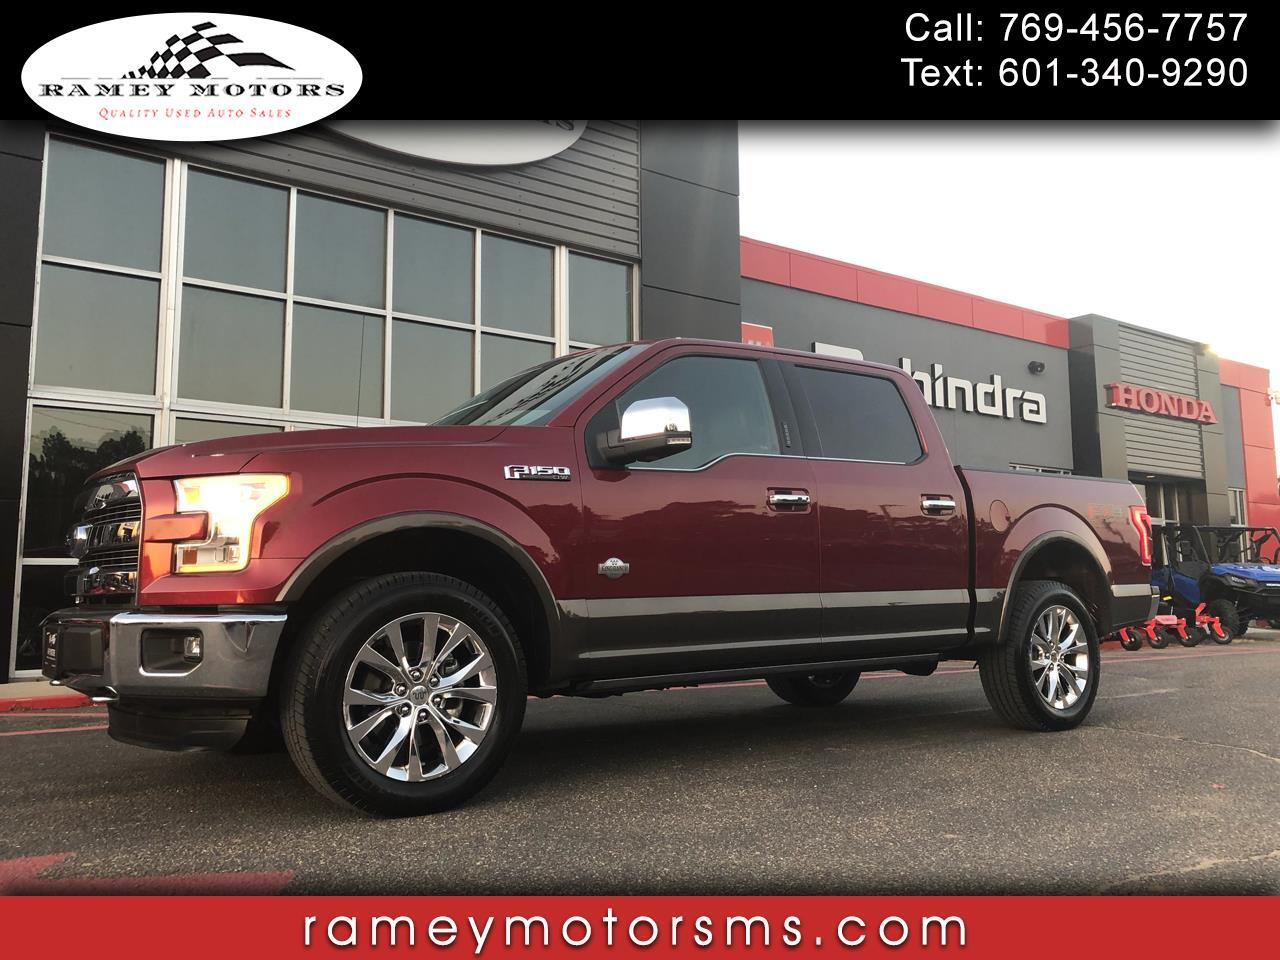 2015 Ford F-150 4WD CREWCAB KING RANCH